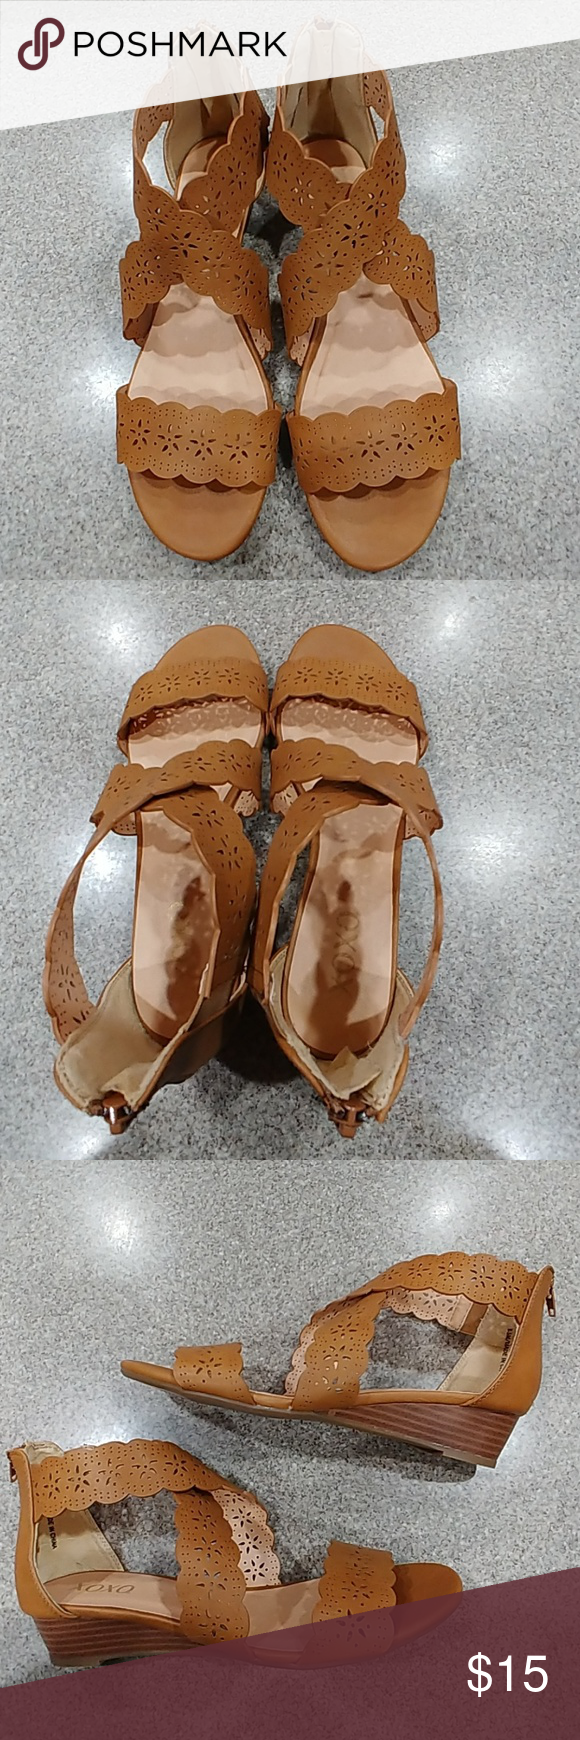 Tan Low Wedge Sandal Brand New/Never Worn with Box. XOXO Tan Low Wedge Sandals. They have a cute perforated floral detail. Size 8.5. Super cute!! XOXO Shoes Sandals #lowwedgesandals Tan Low Wedge Sandal Brand New/Never Worn with Box. XOXO Tan Low Wedge Sandals. They have a cute perforated floral detail. Size 8.5. Super cute!! XOXO Shoes Sandals #lowwedgesandals Tan Low Wedge Sandal Brand New/Never Worn with Box. XOXO Tan Low Wedge Sandals. They have a cute perforated floral detail. Size 8.5. Sup #lowwedgesandals